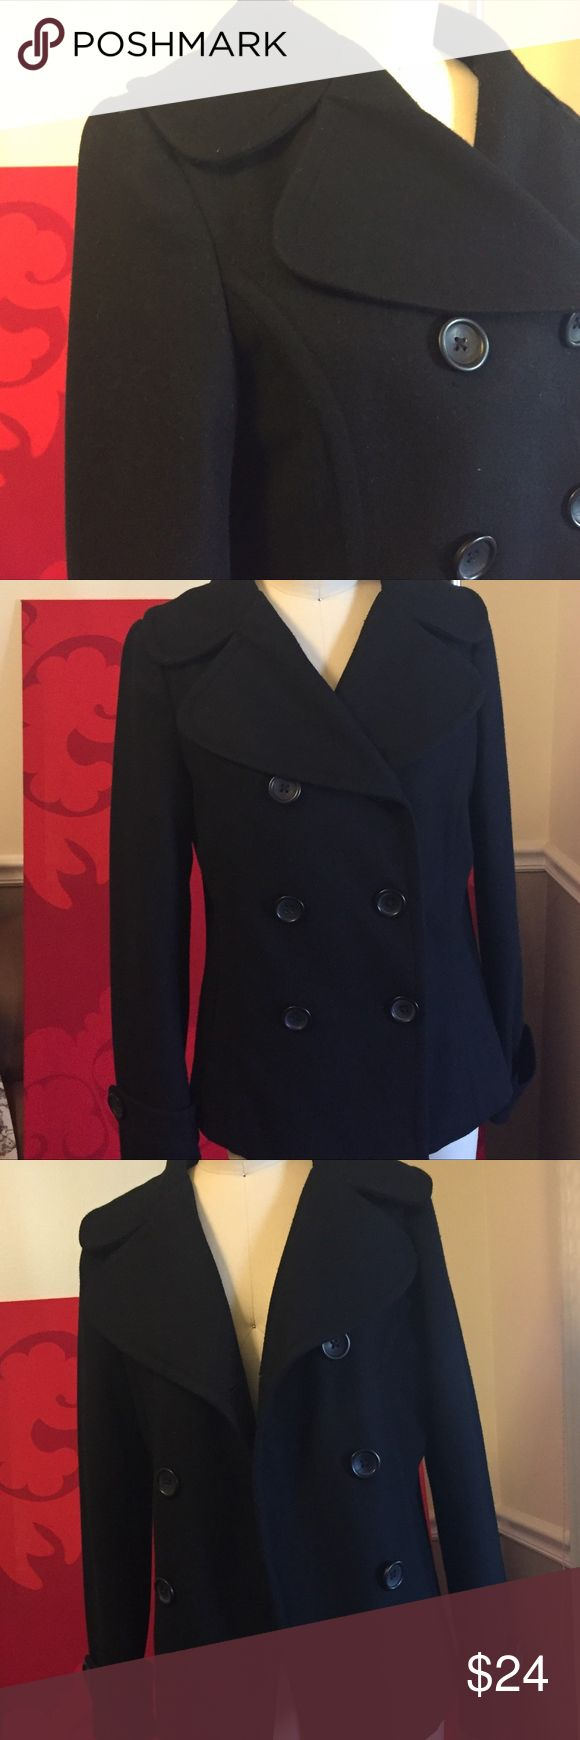 Old Navy Pea Coat Old Navy black wool blend peacoat. Gently pre-loved and in excellent condition. All original buttons/no damage.  Shell - 69% Wool/ 21% Polyester/ 10% Nylon Lining - 100% Polyester Old Navy Jackets & Coats Pea Coats